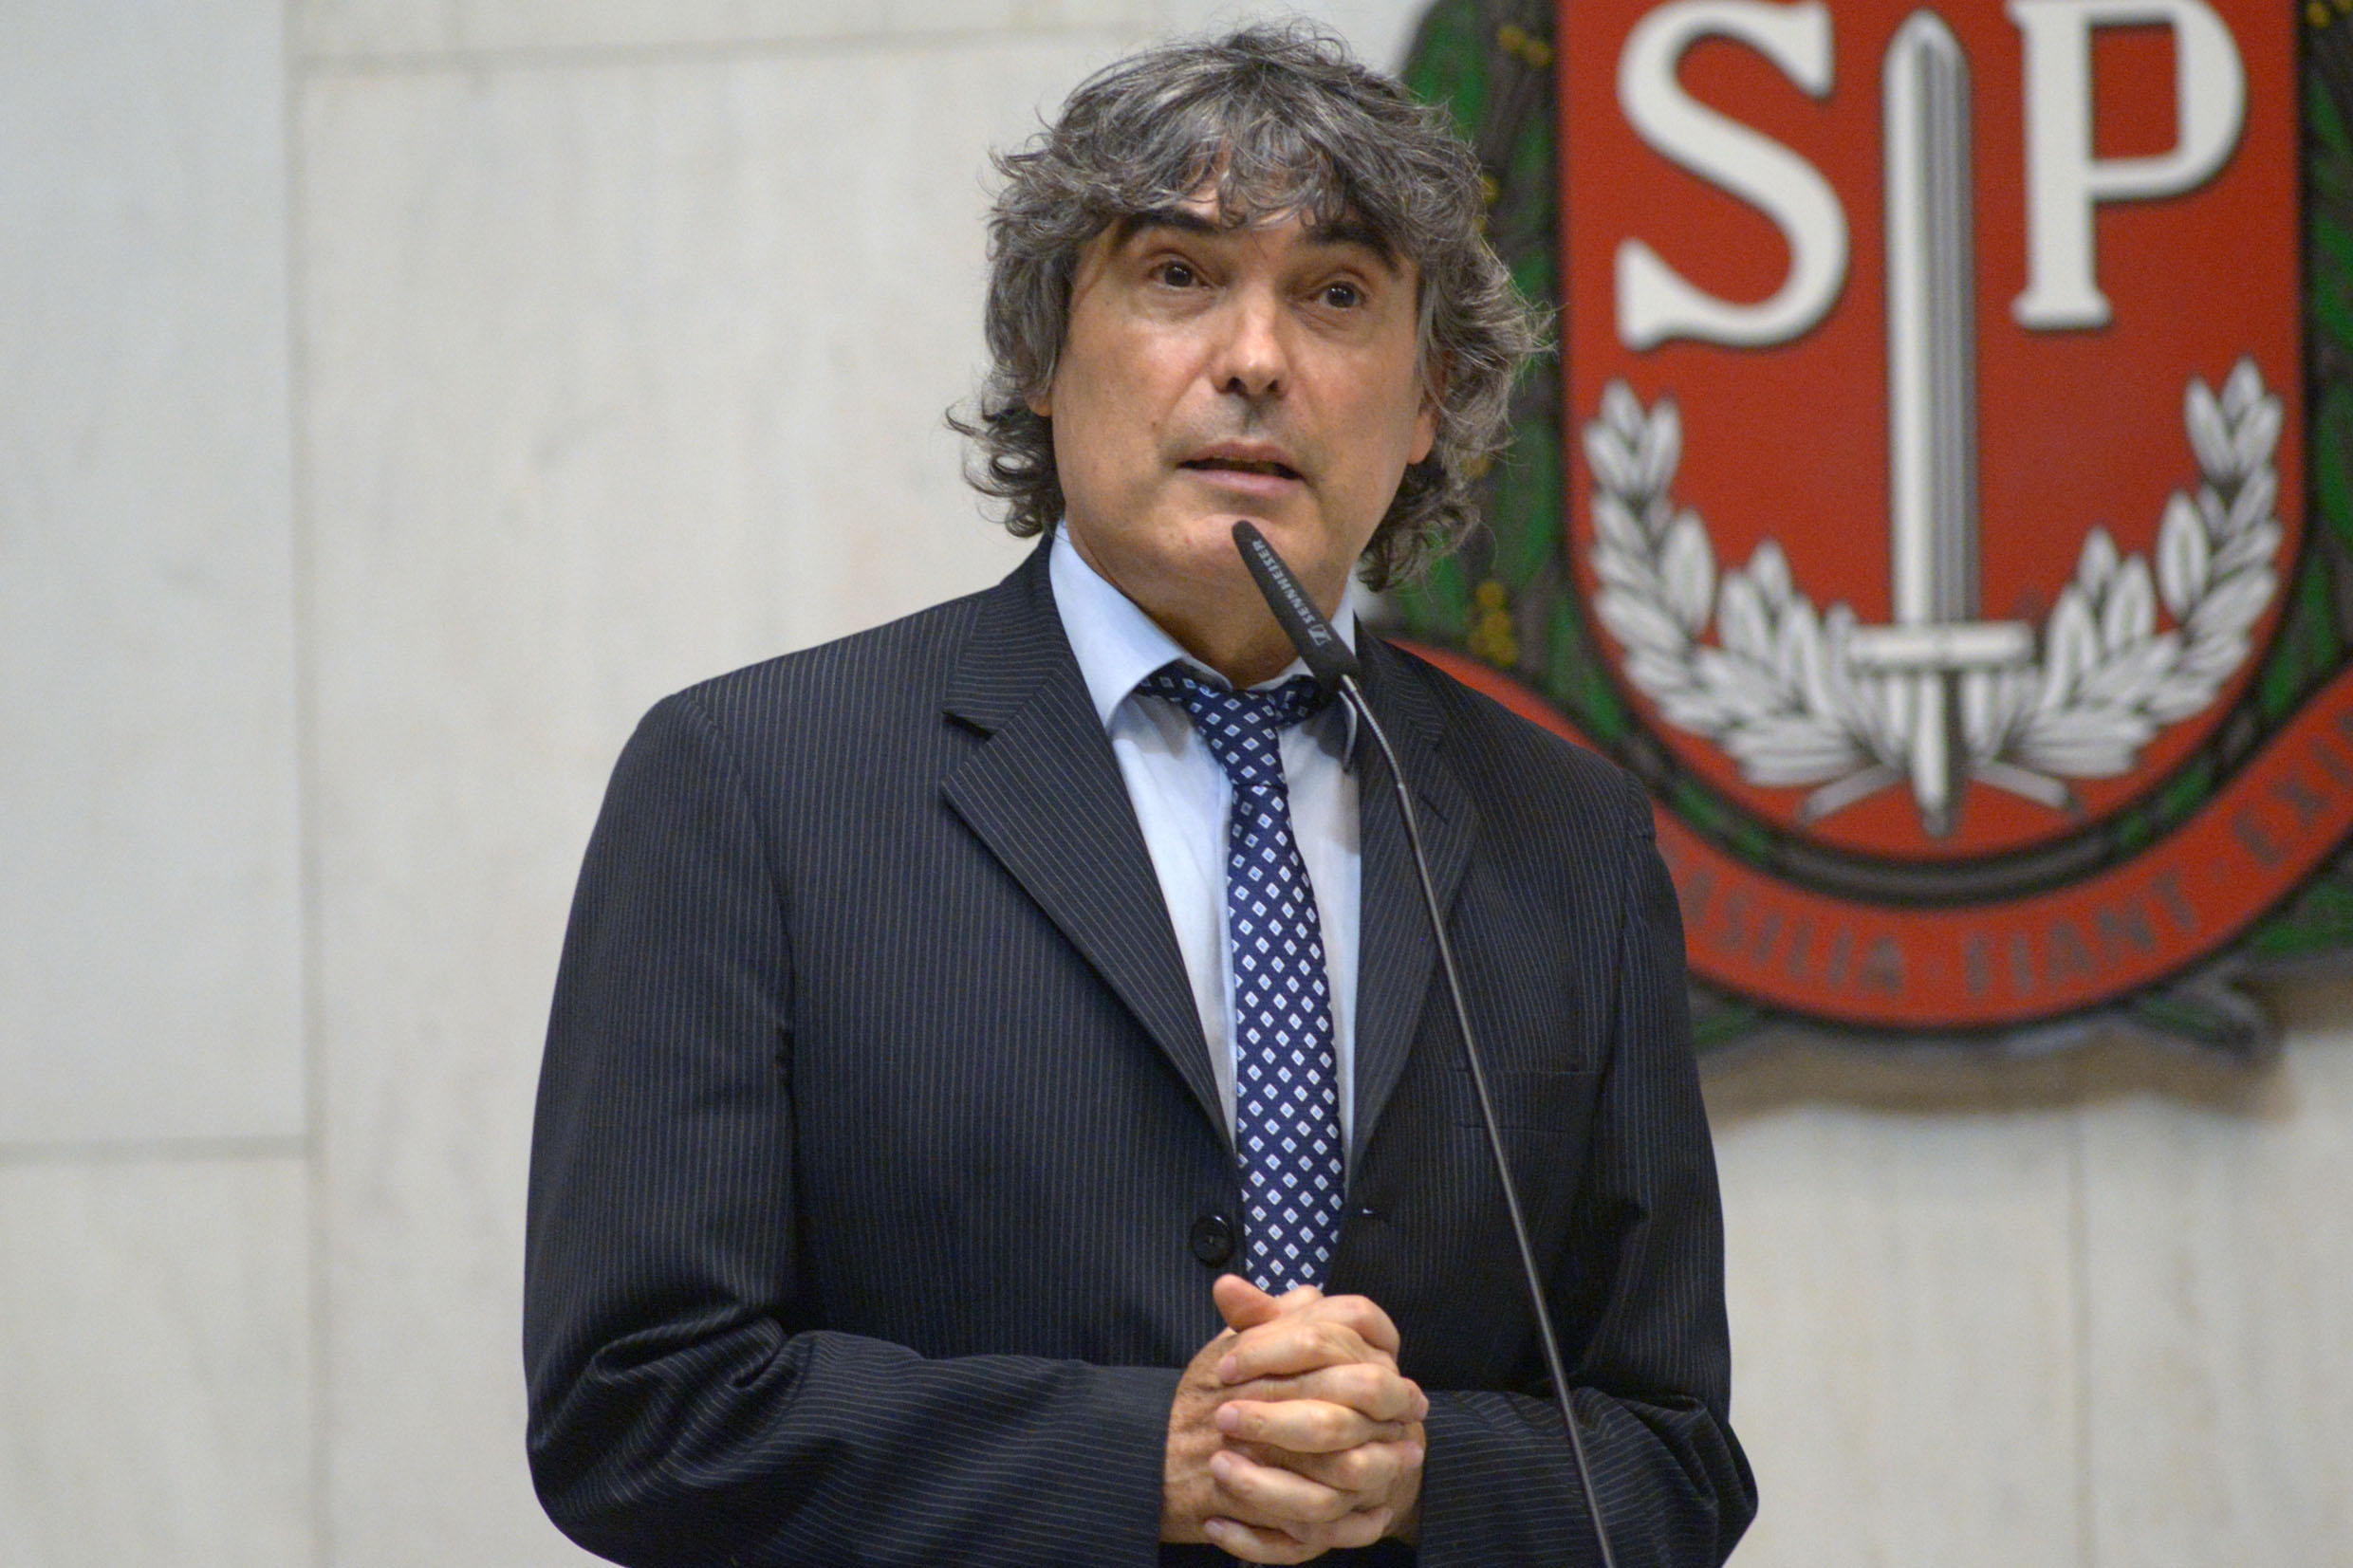 Carlos Giannazi<a style='float:right' href='https://www3.al.sp.gov.br/repositorio/noticia/N-02-2020/fg246949.jpg' target=_blank><img src='/_img/material-file-download-white.png' width='14px' alt='Clique para baixar a imagem'></a>